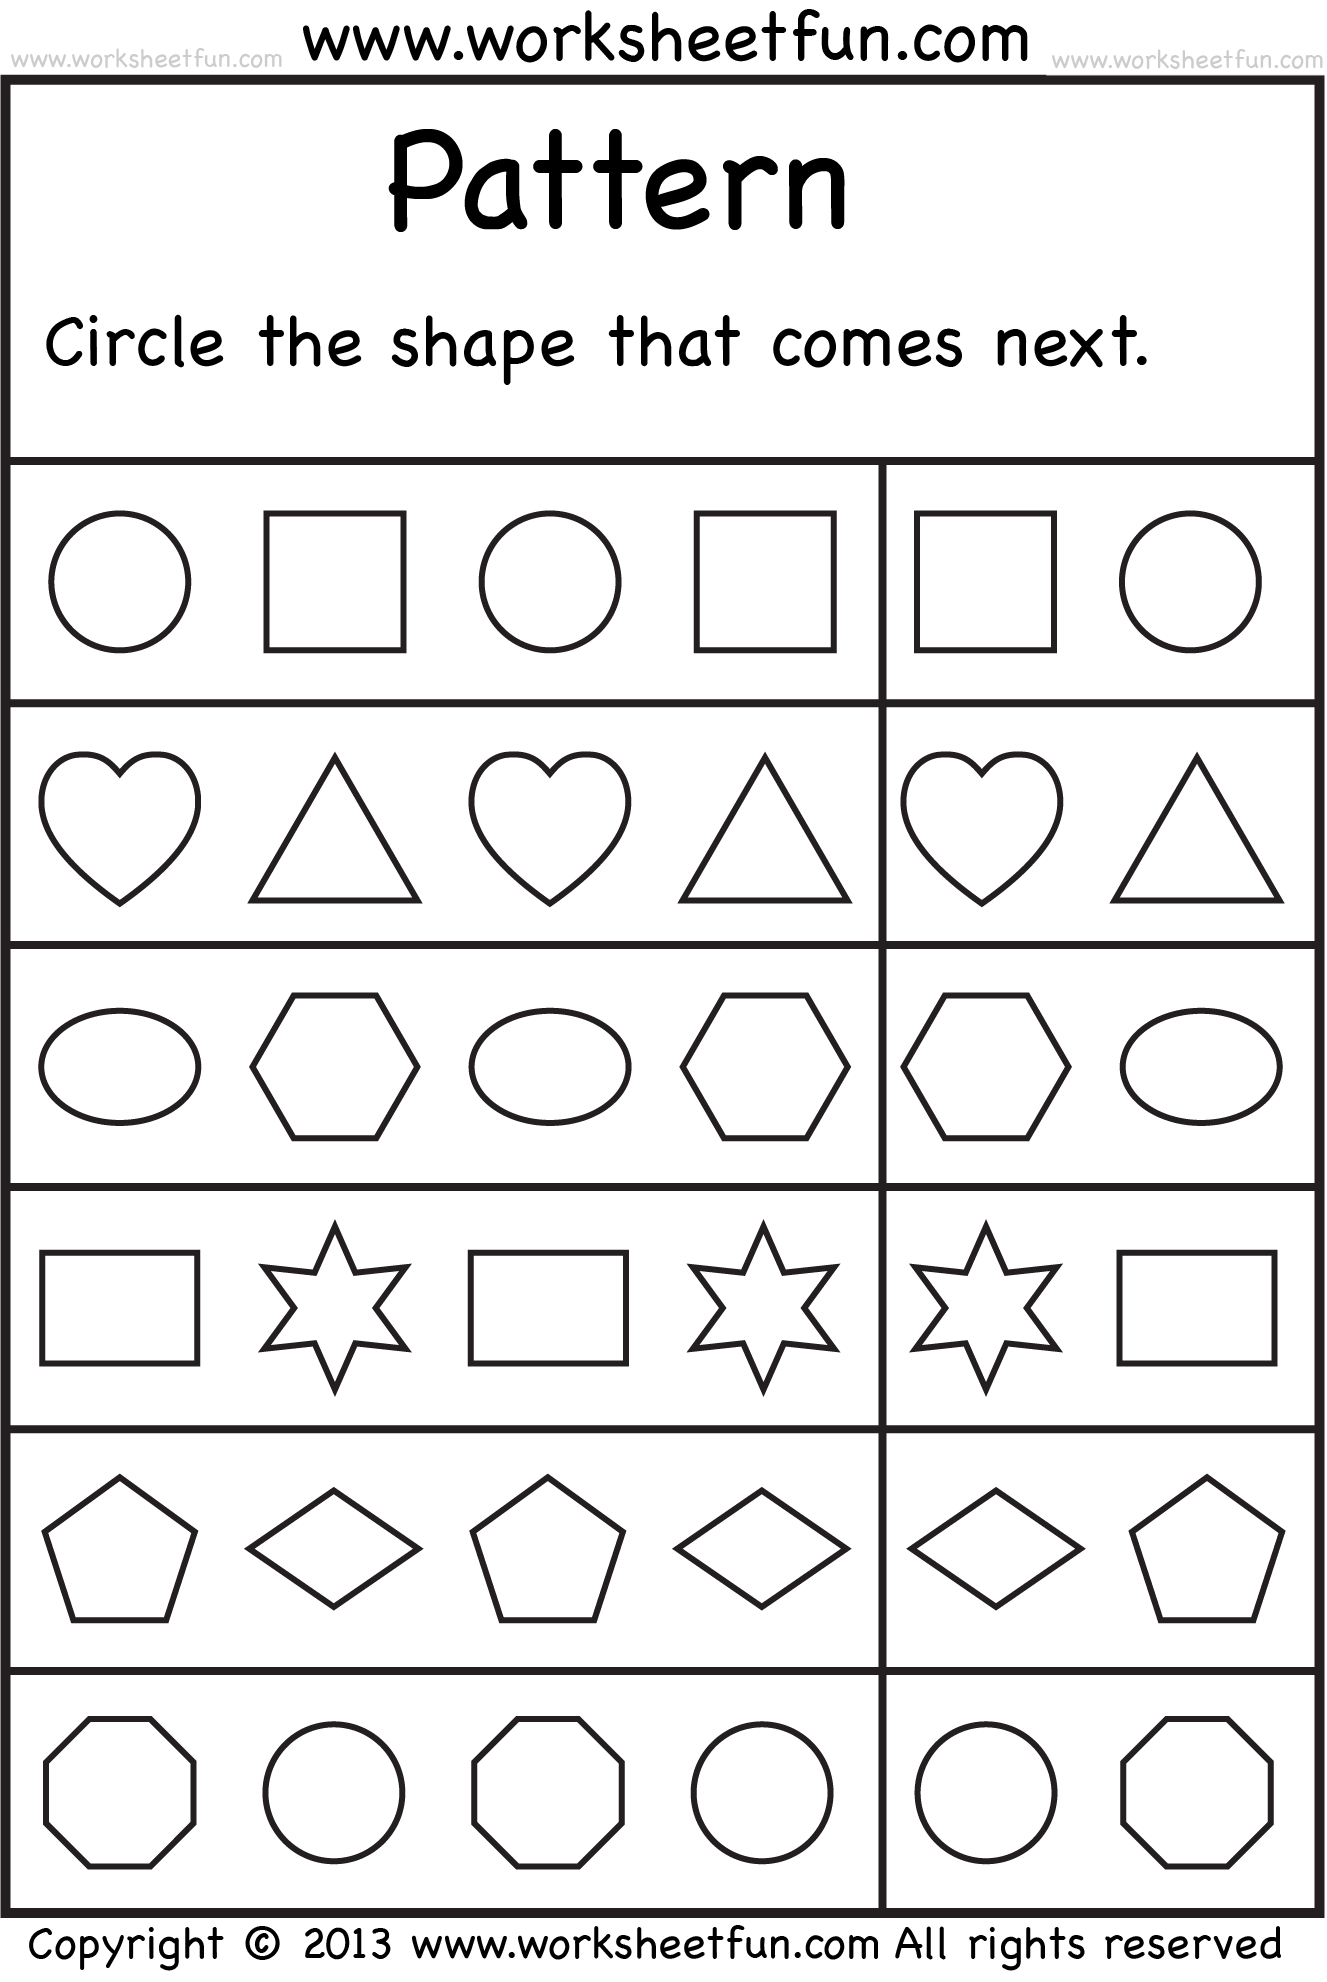 Proatmealus  Marvellous  Images About School Worksheets On Pinterest  Number Words  With Lovable  Images About School Worksheets On Pinterest  Number Words Alphabet Worksheets And Free Printable Kindergarten Worksheets With Comely The Gift Of The Magi Worksheet Also Plotting Points On A Graph Worksheet In Addition Irs Capital Gains Worksheet And Kindergarten Sight Words Worksheet As Well As Expressions And Equations Worksheets Additionally Hidden Objects Worksheets From Pinterestcom With Proatmealus  Lovable  Images About School Worksheets On Pinterest  Number Words  With Comely  Images About School Worksheets On Pinterest  Number Words Alphabet Worksheets And Free Printable Kindergarten Worksheets And Marvellous The Gift Of The Magi Worksheet Also Plotting Points On A Graph Worksheet In Addition Irs Capital Gains Worksheet From Pinterestcom